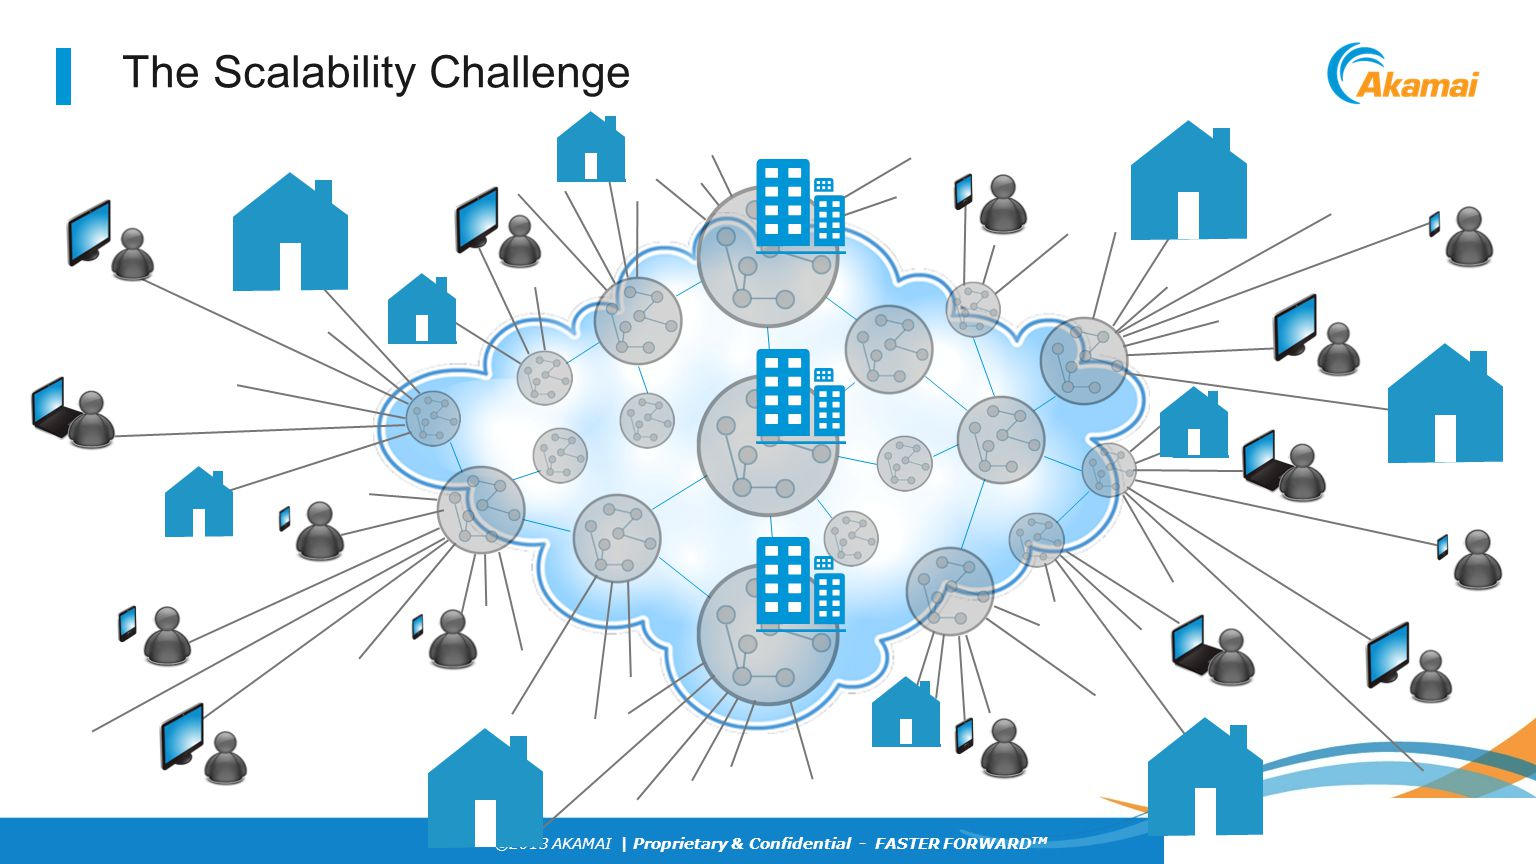 The Scalability Challenge